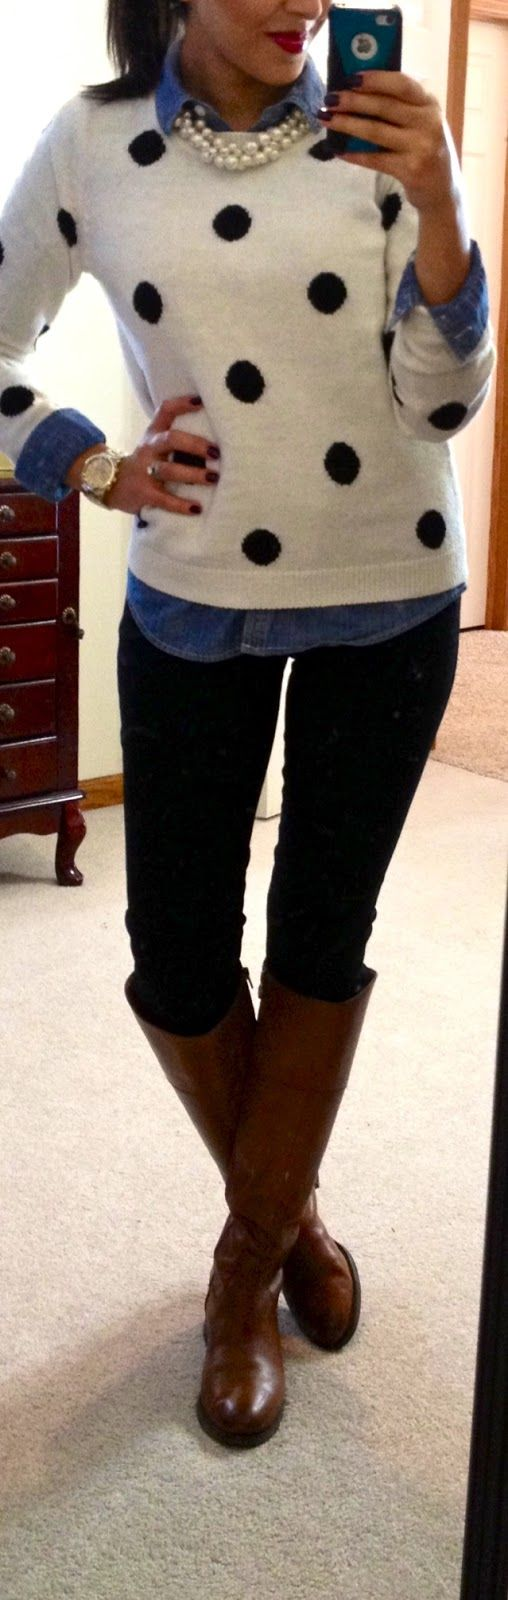 polka dots, chambray, riding boots really like this, so cute... need to go shopping for every piece!! ;-)